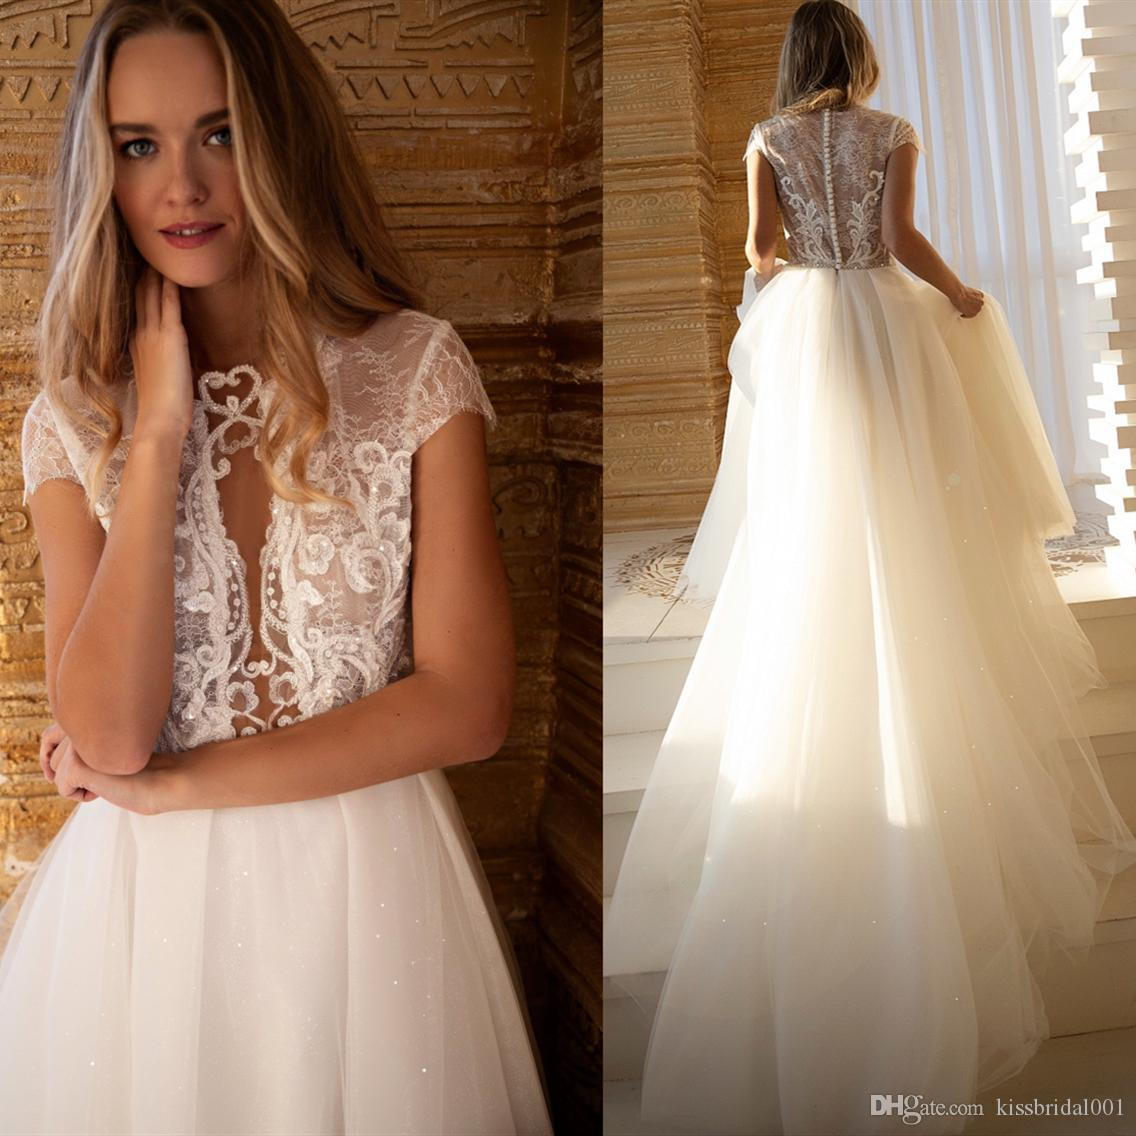 f252bd334803 Discount Boho Wedding Dresses 2019 A Line Short Sleeve Lace Tulle Wedding  Dress Bridal Gowns Sheer Bead Sequin Appliques Bride Beach Wedding Gown  Formal ...